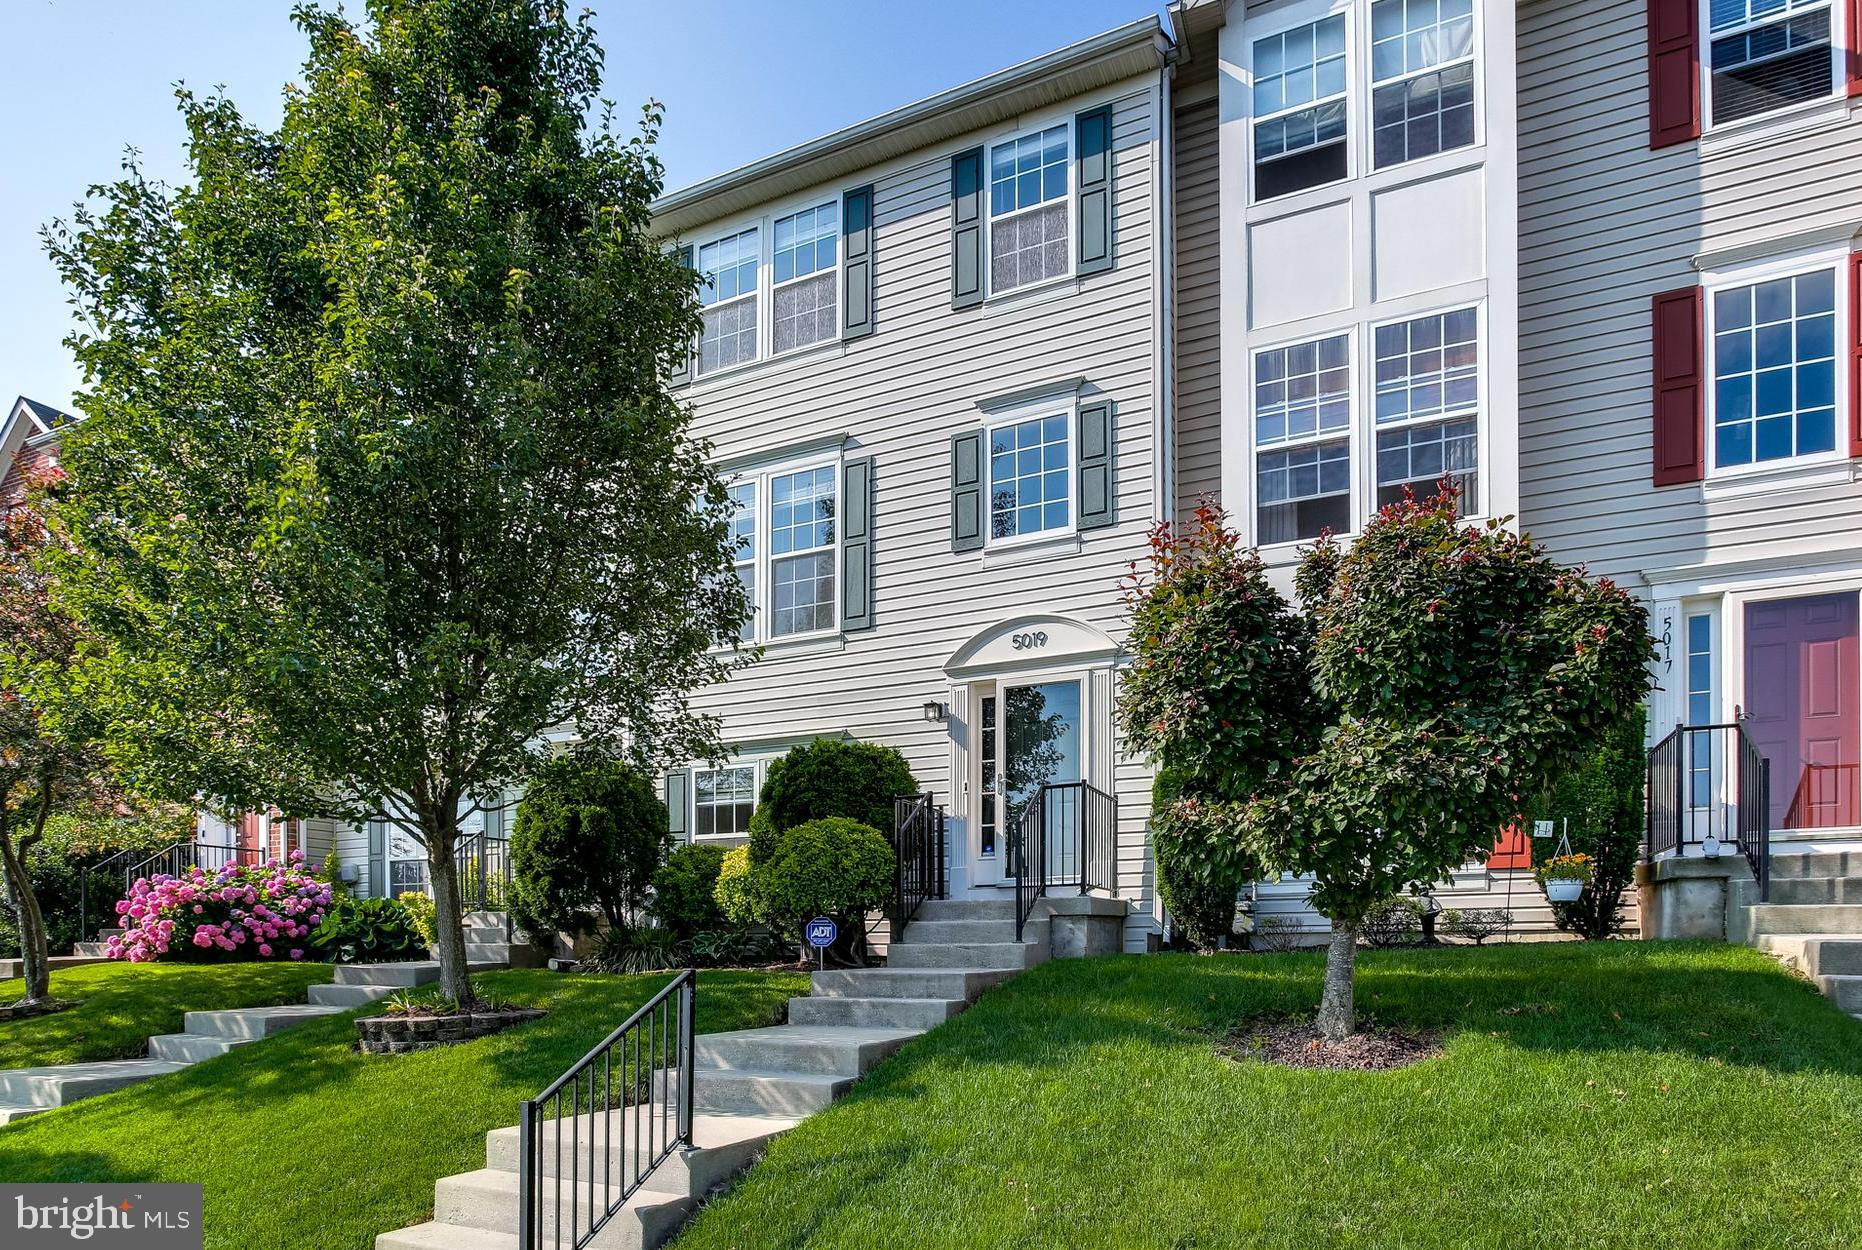 This 3 Bedroom, 3.5 Bath Townhome in Eaton Square is A Must See! The Upper Level features an updated